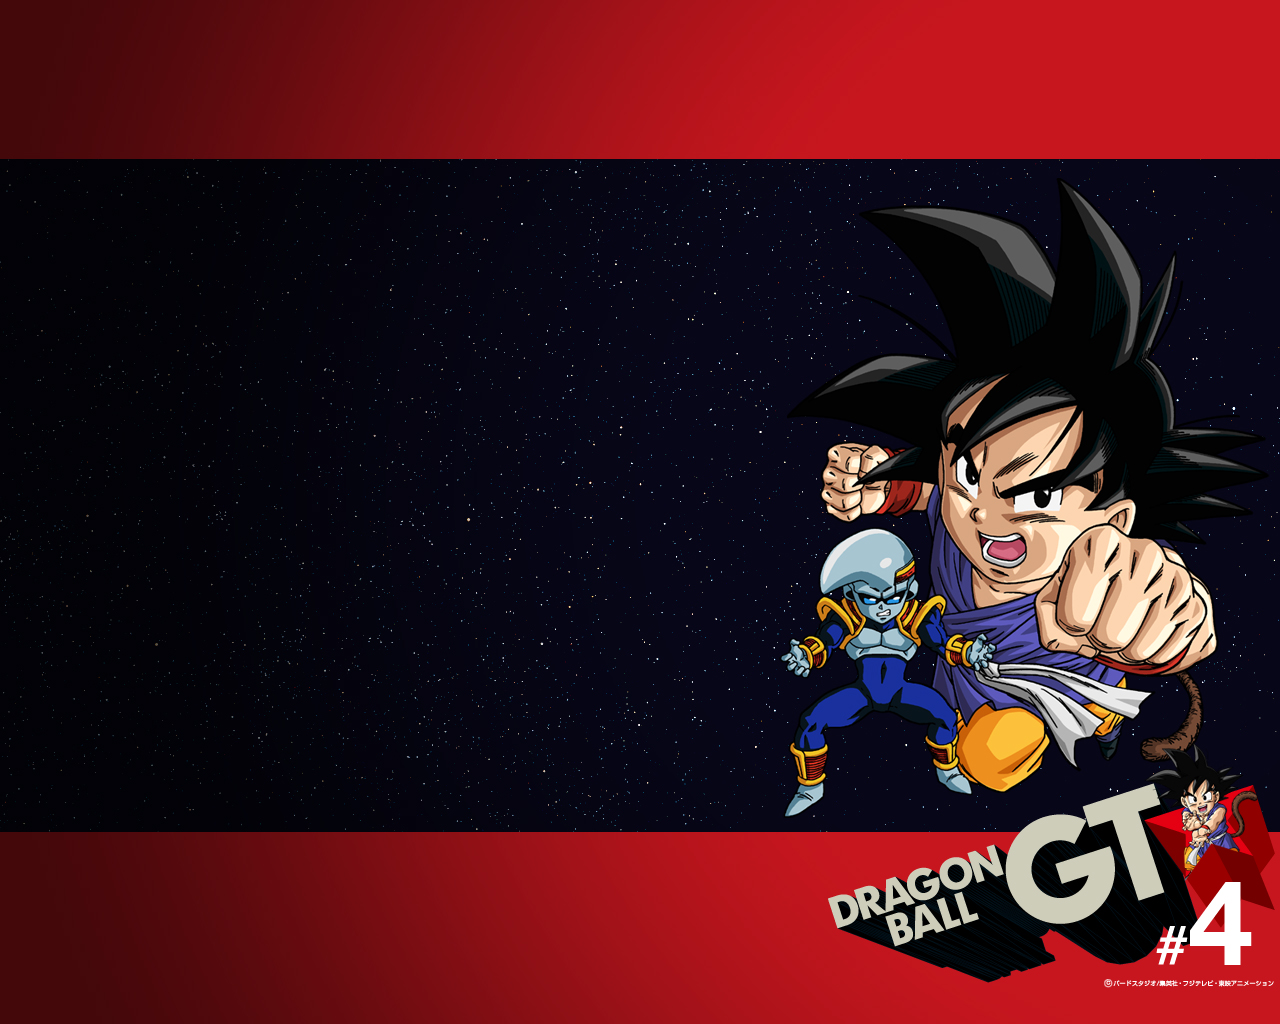 wallpapers relacionados dragn ball gt 001 goku dragn ball gt 002 1280x1024